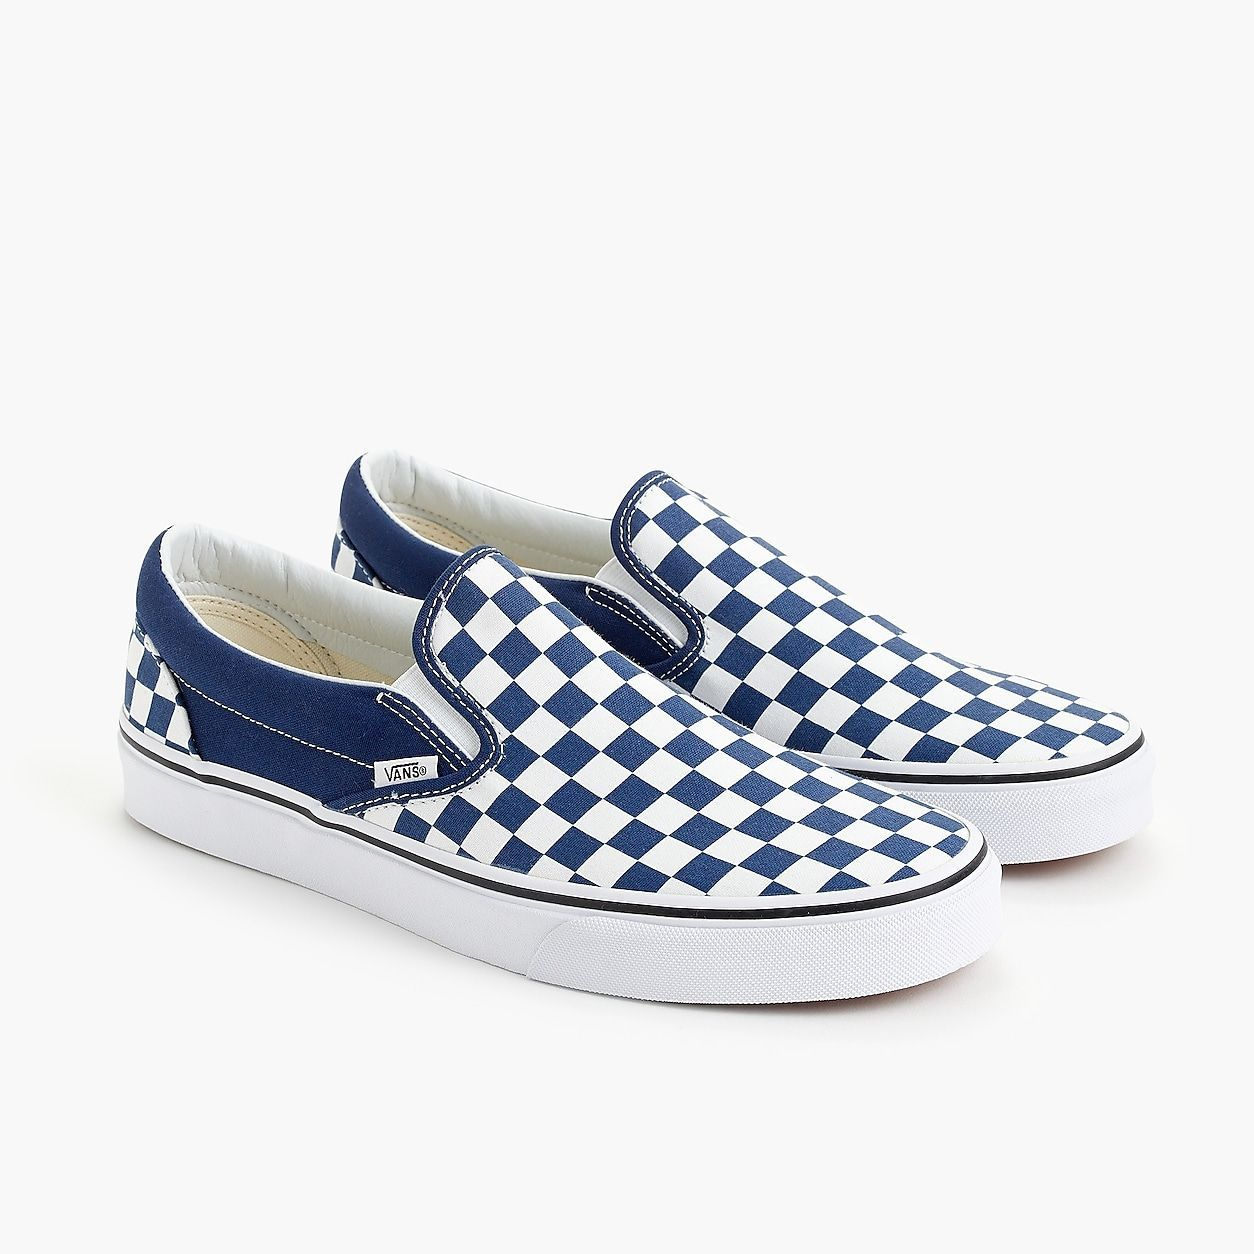 Vans Slip-On Sneakers In Blue Checkerboard #women ...